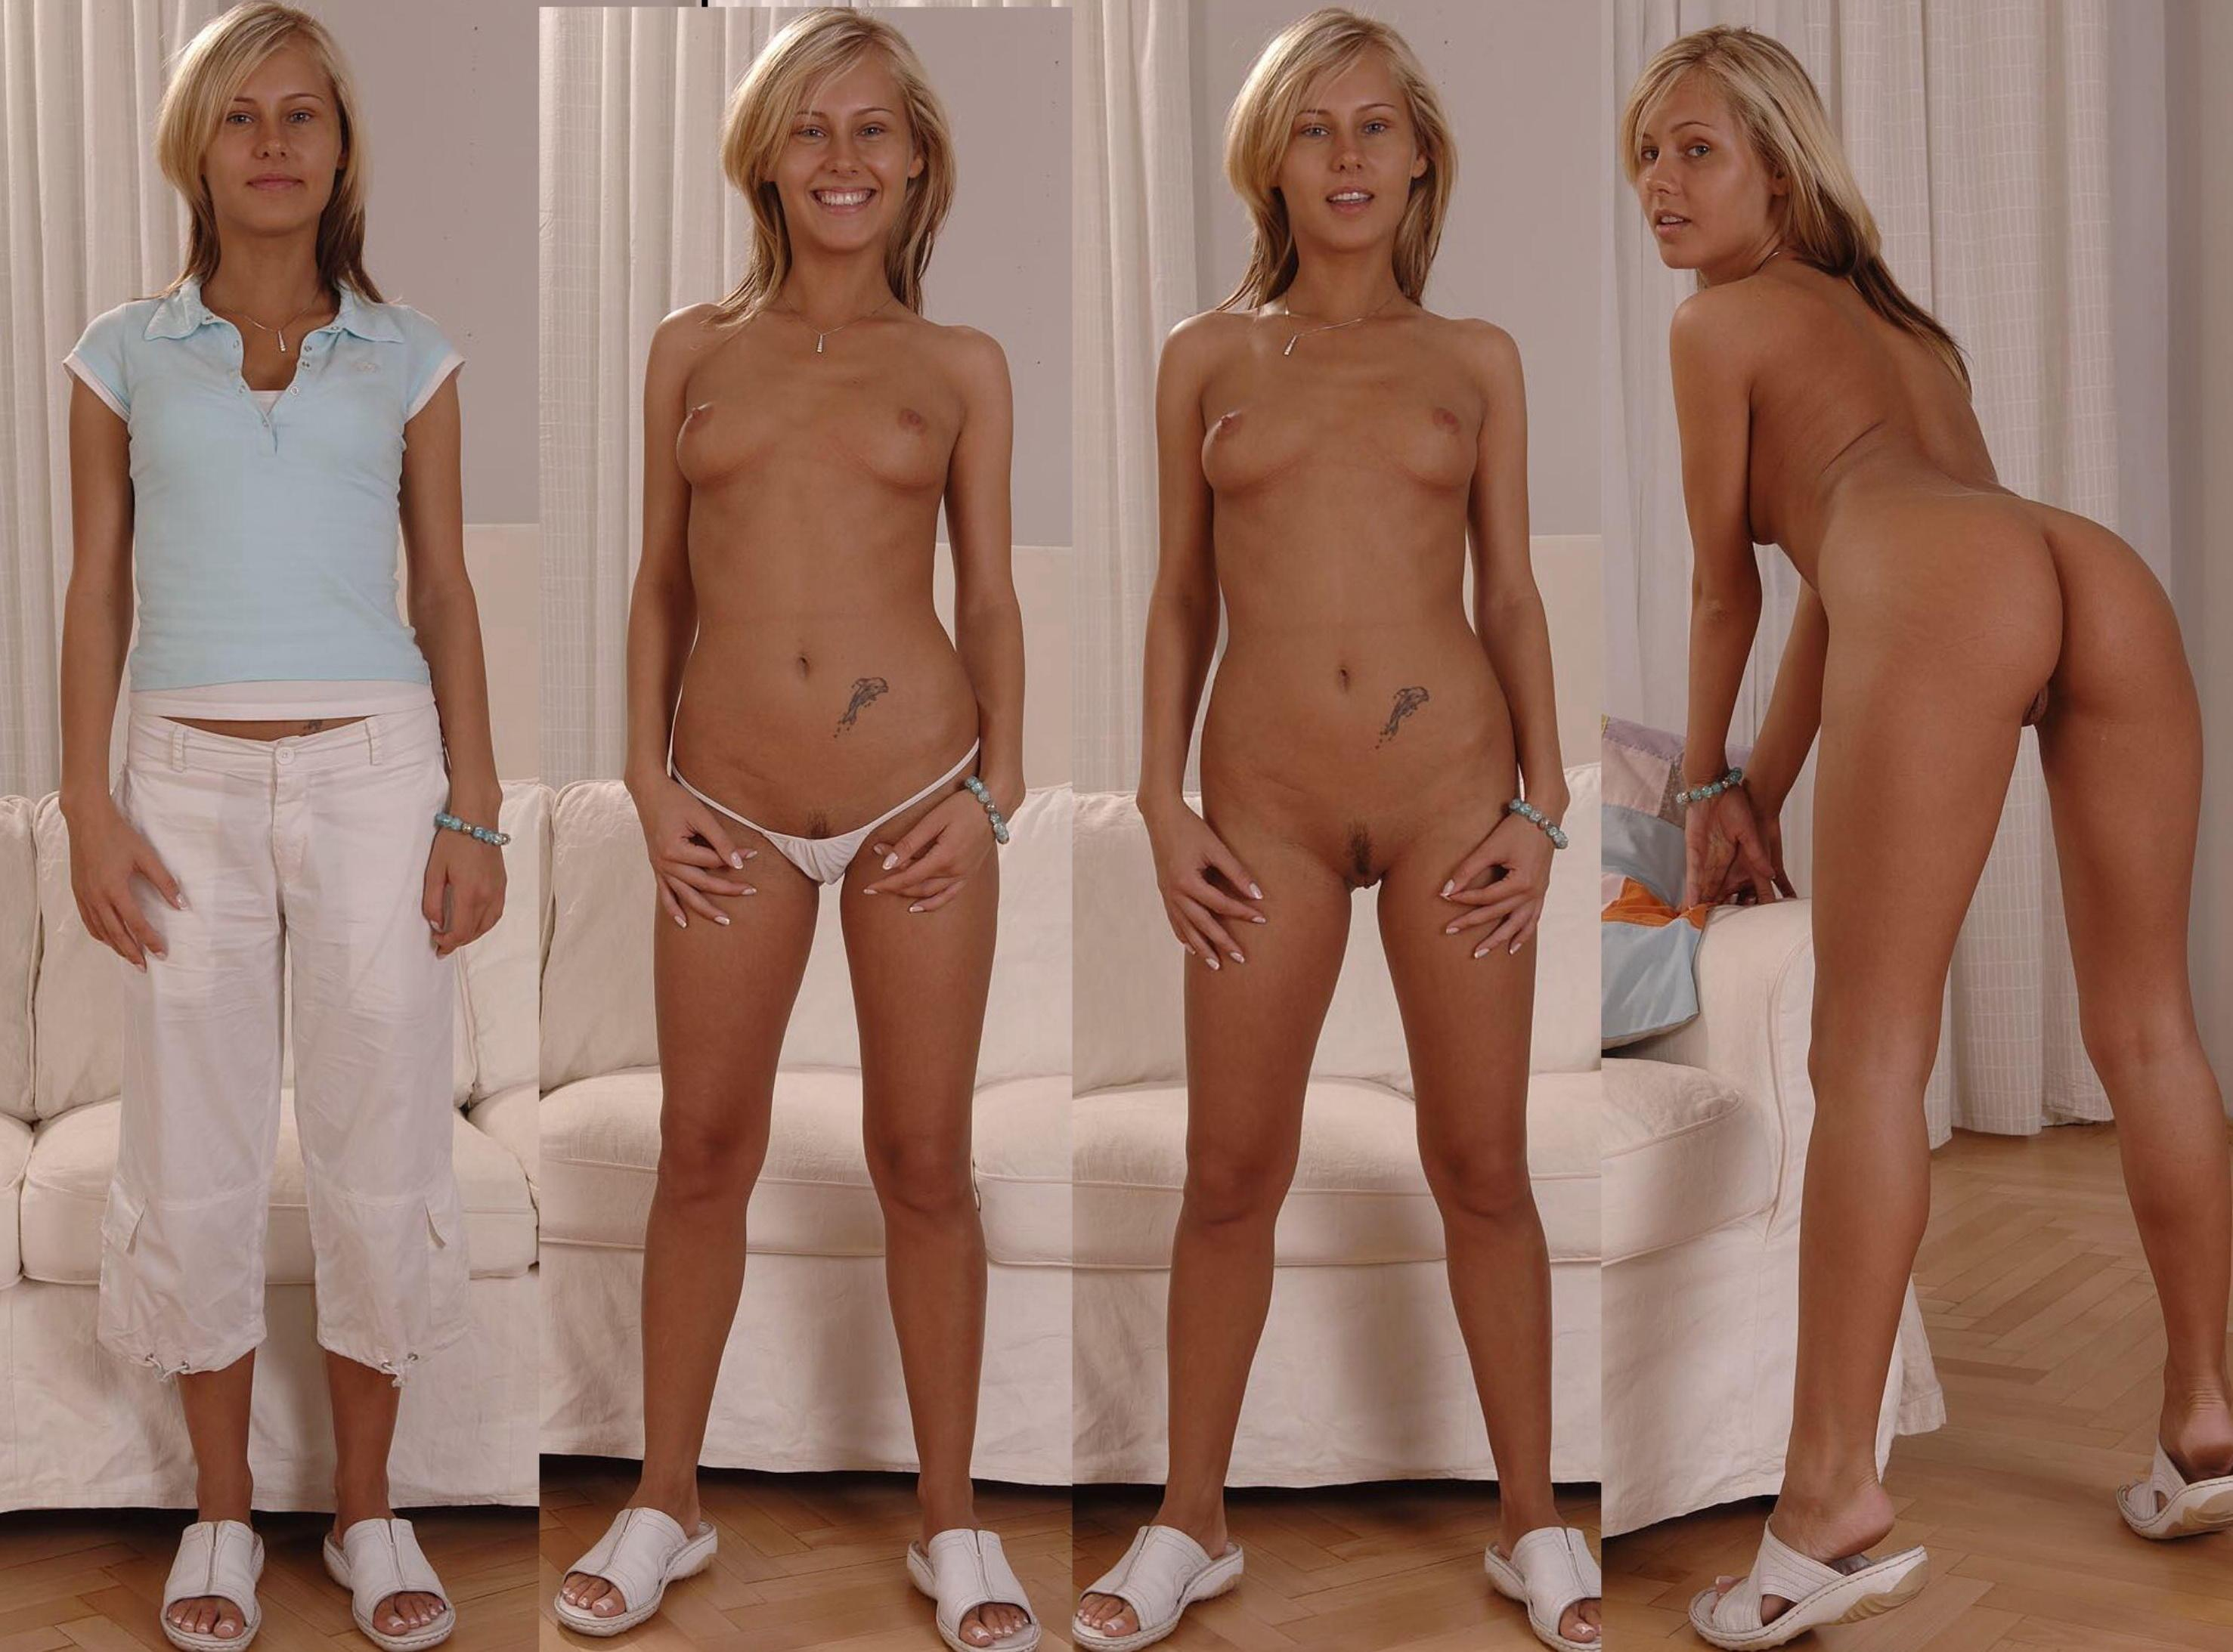 Naked and clothed pics